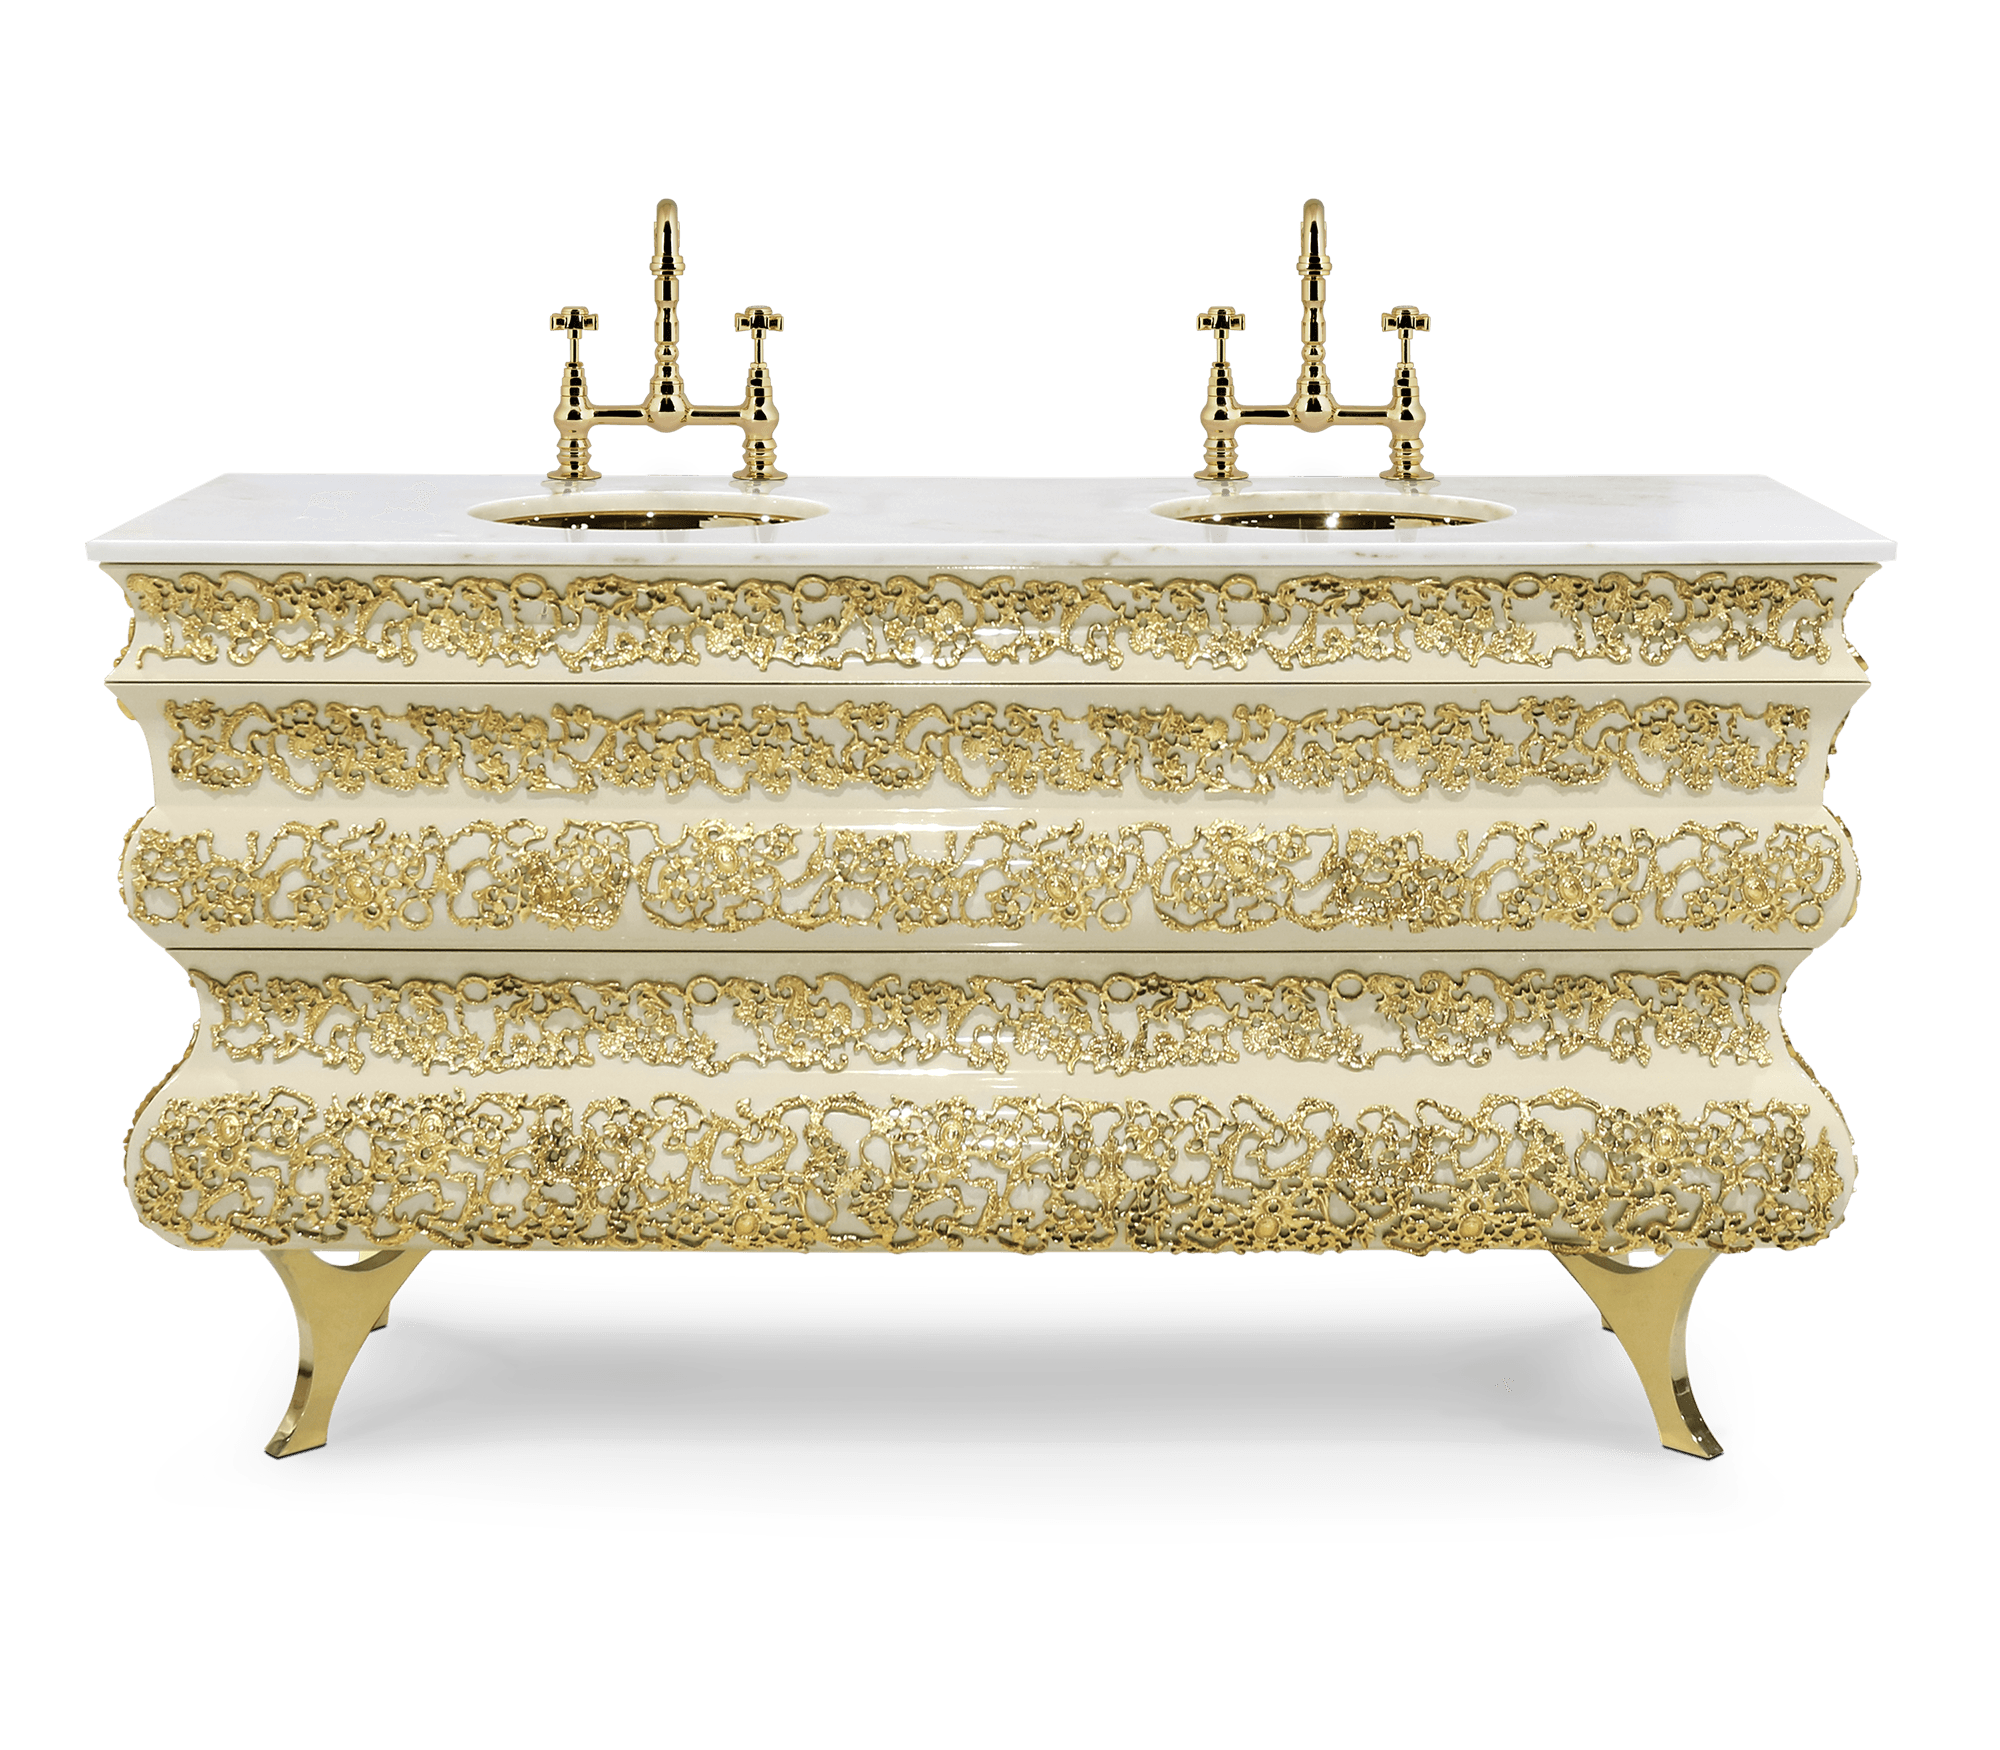 Crochet Washbasin by Boca do Lobo